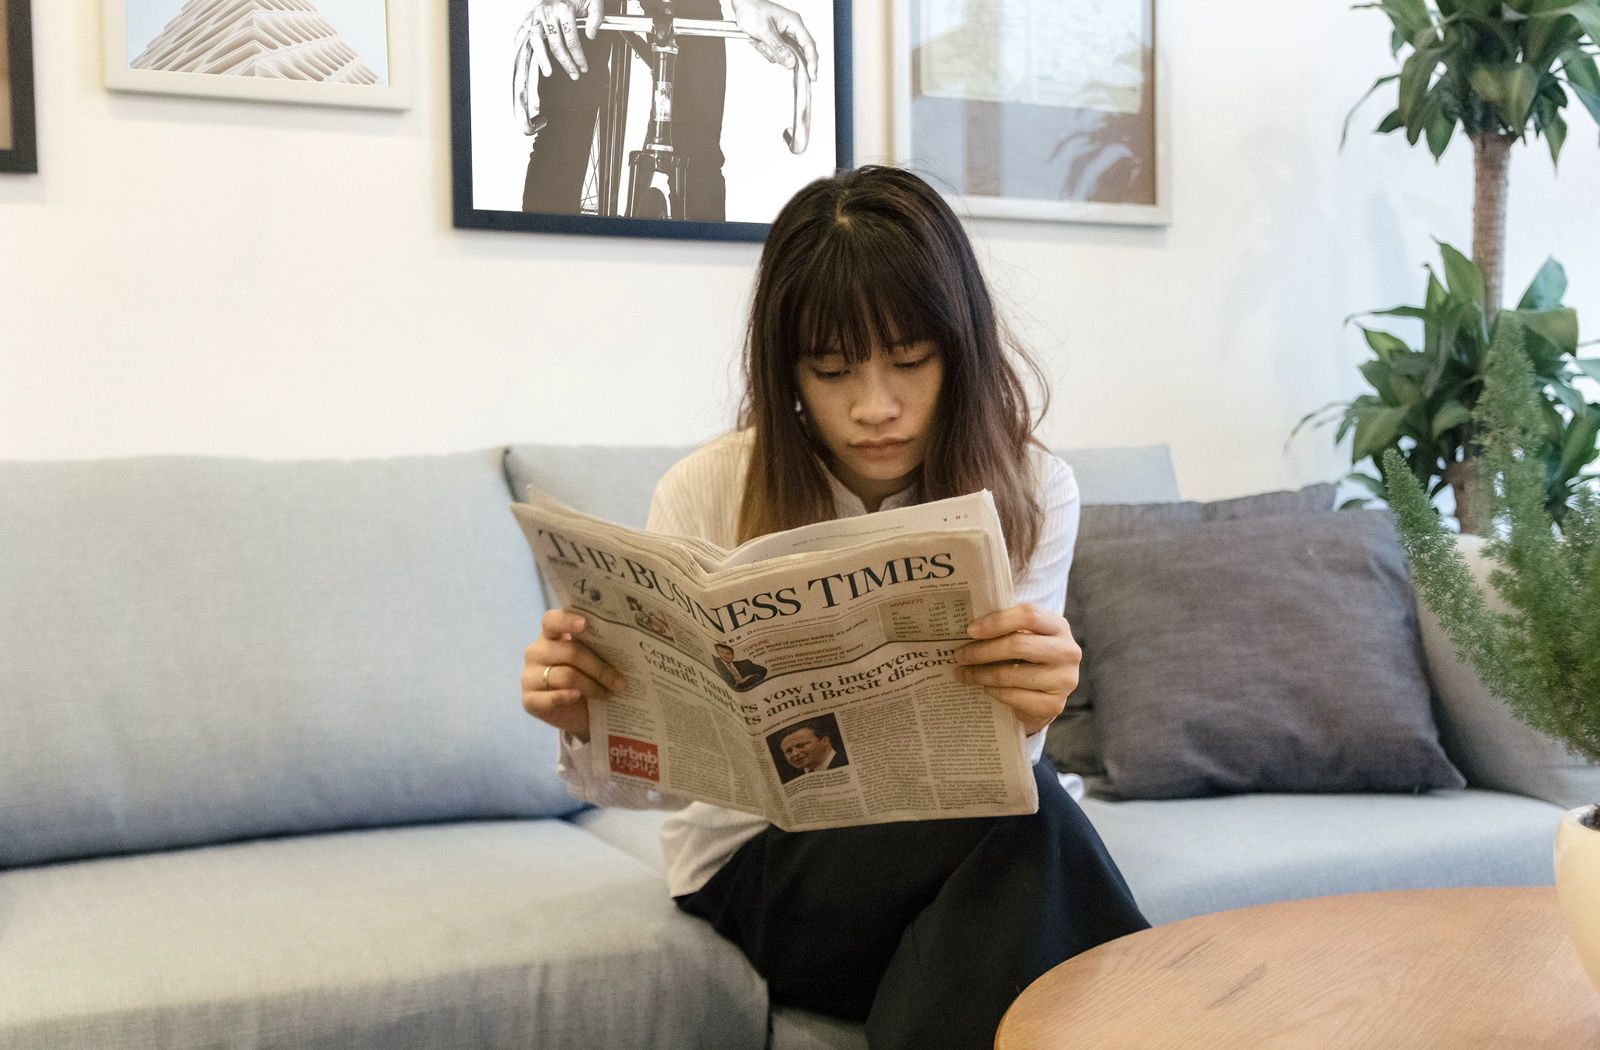 Reading a quality newspaper is good preparation for Section 1